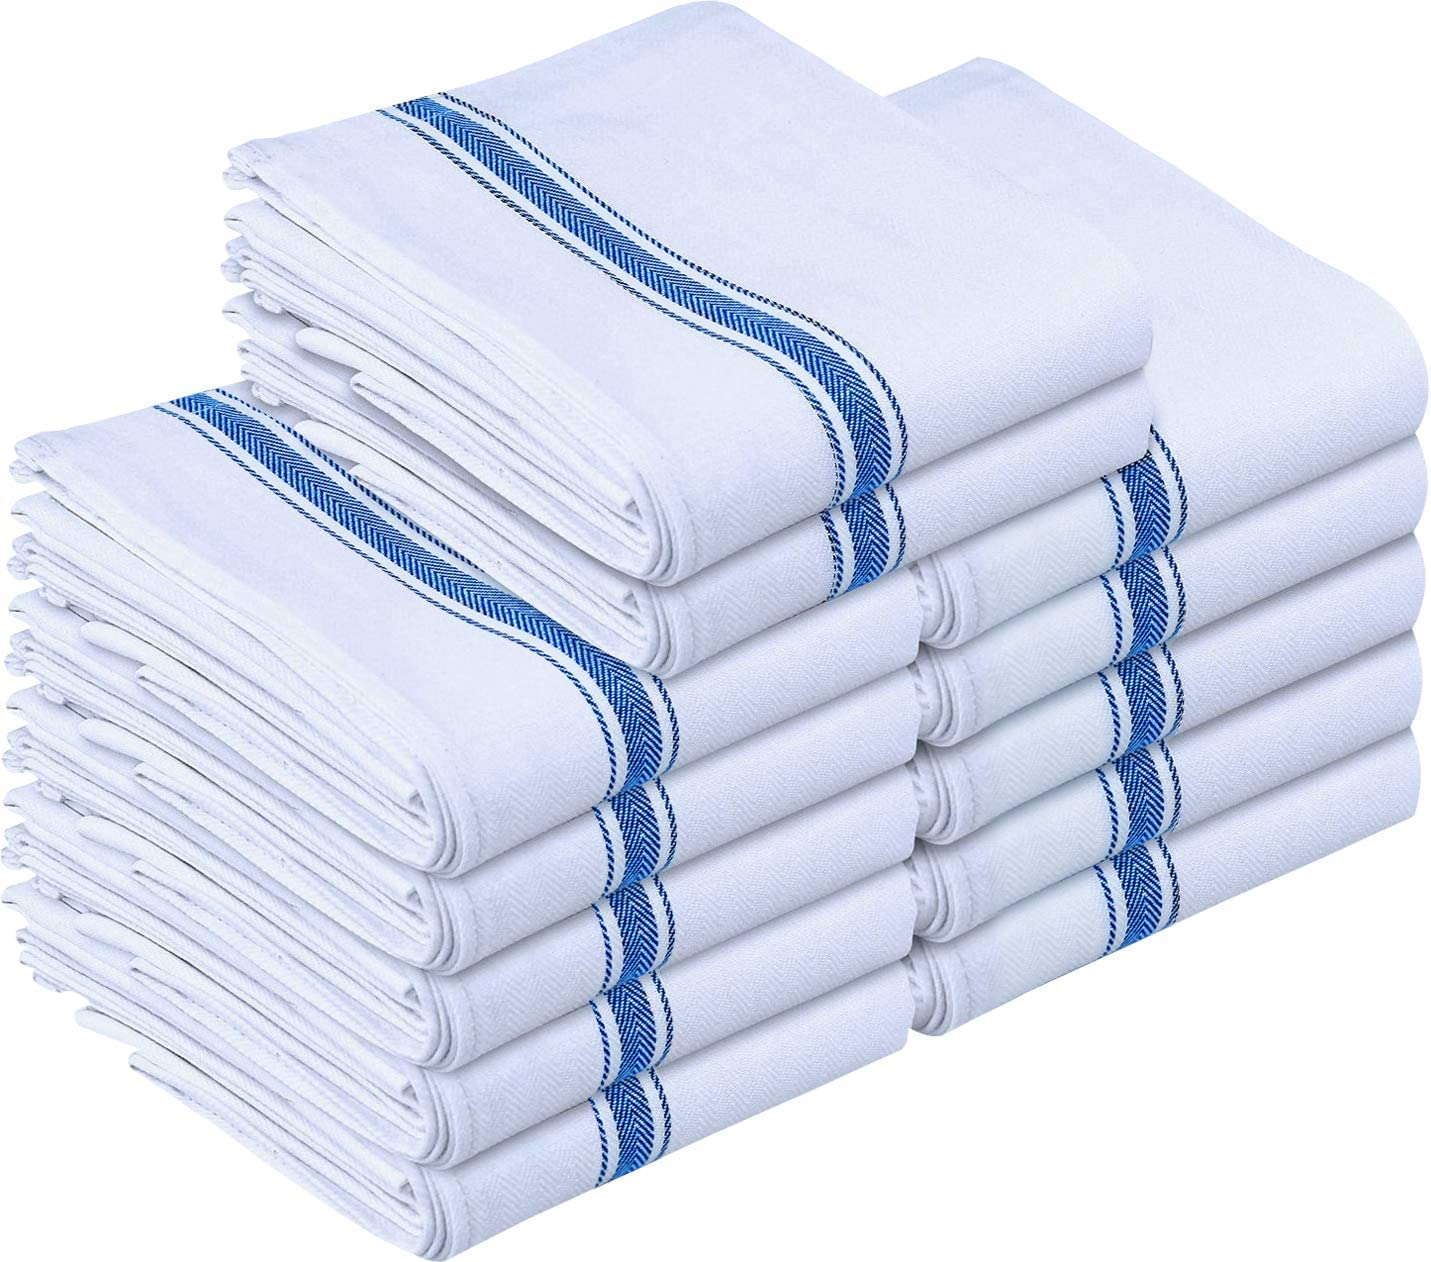 White and blue striped cotton dish cloths